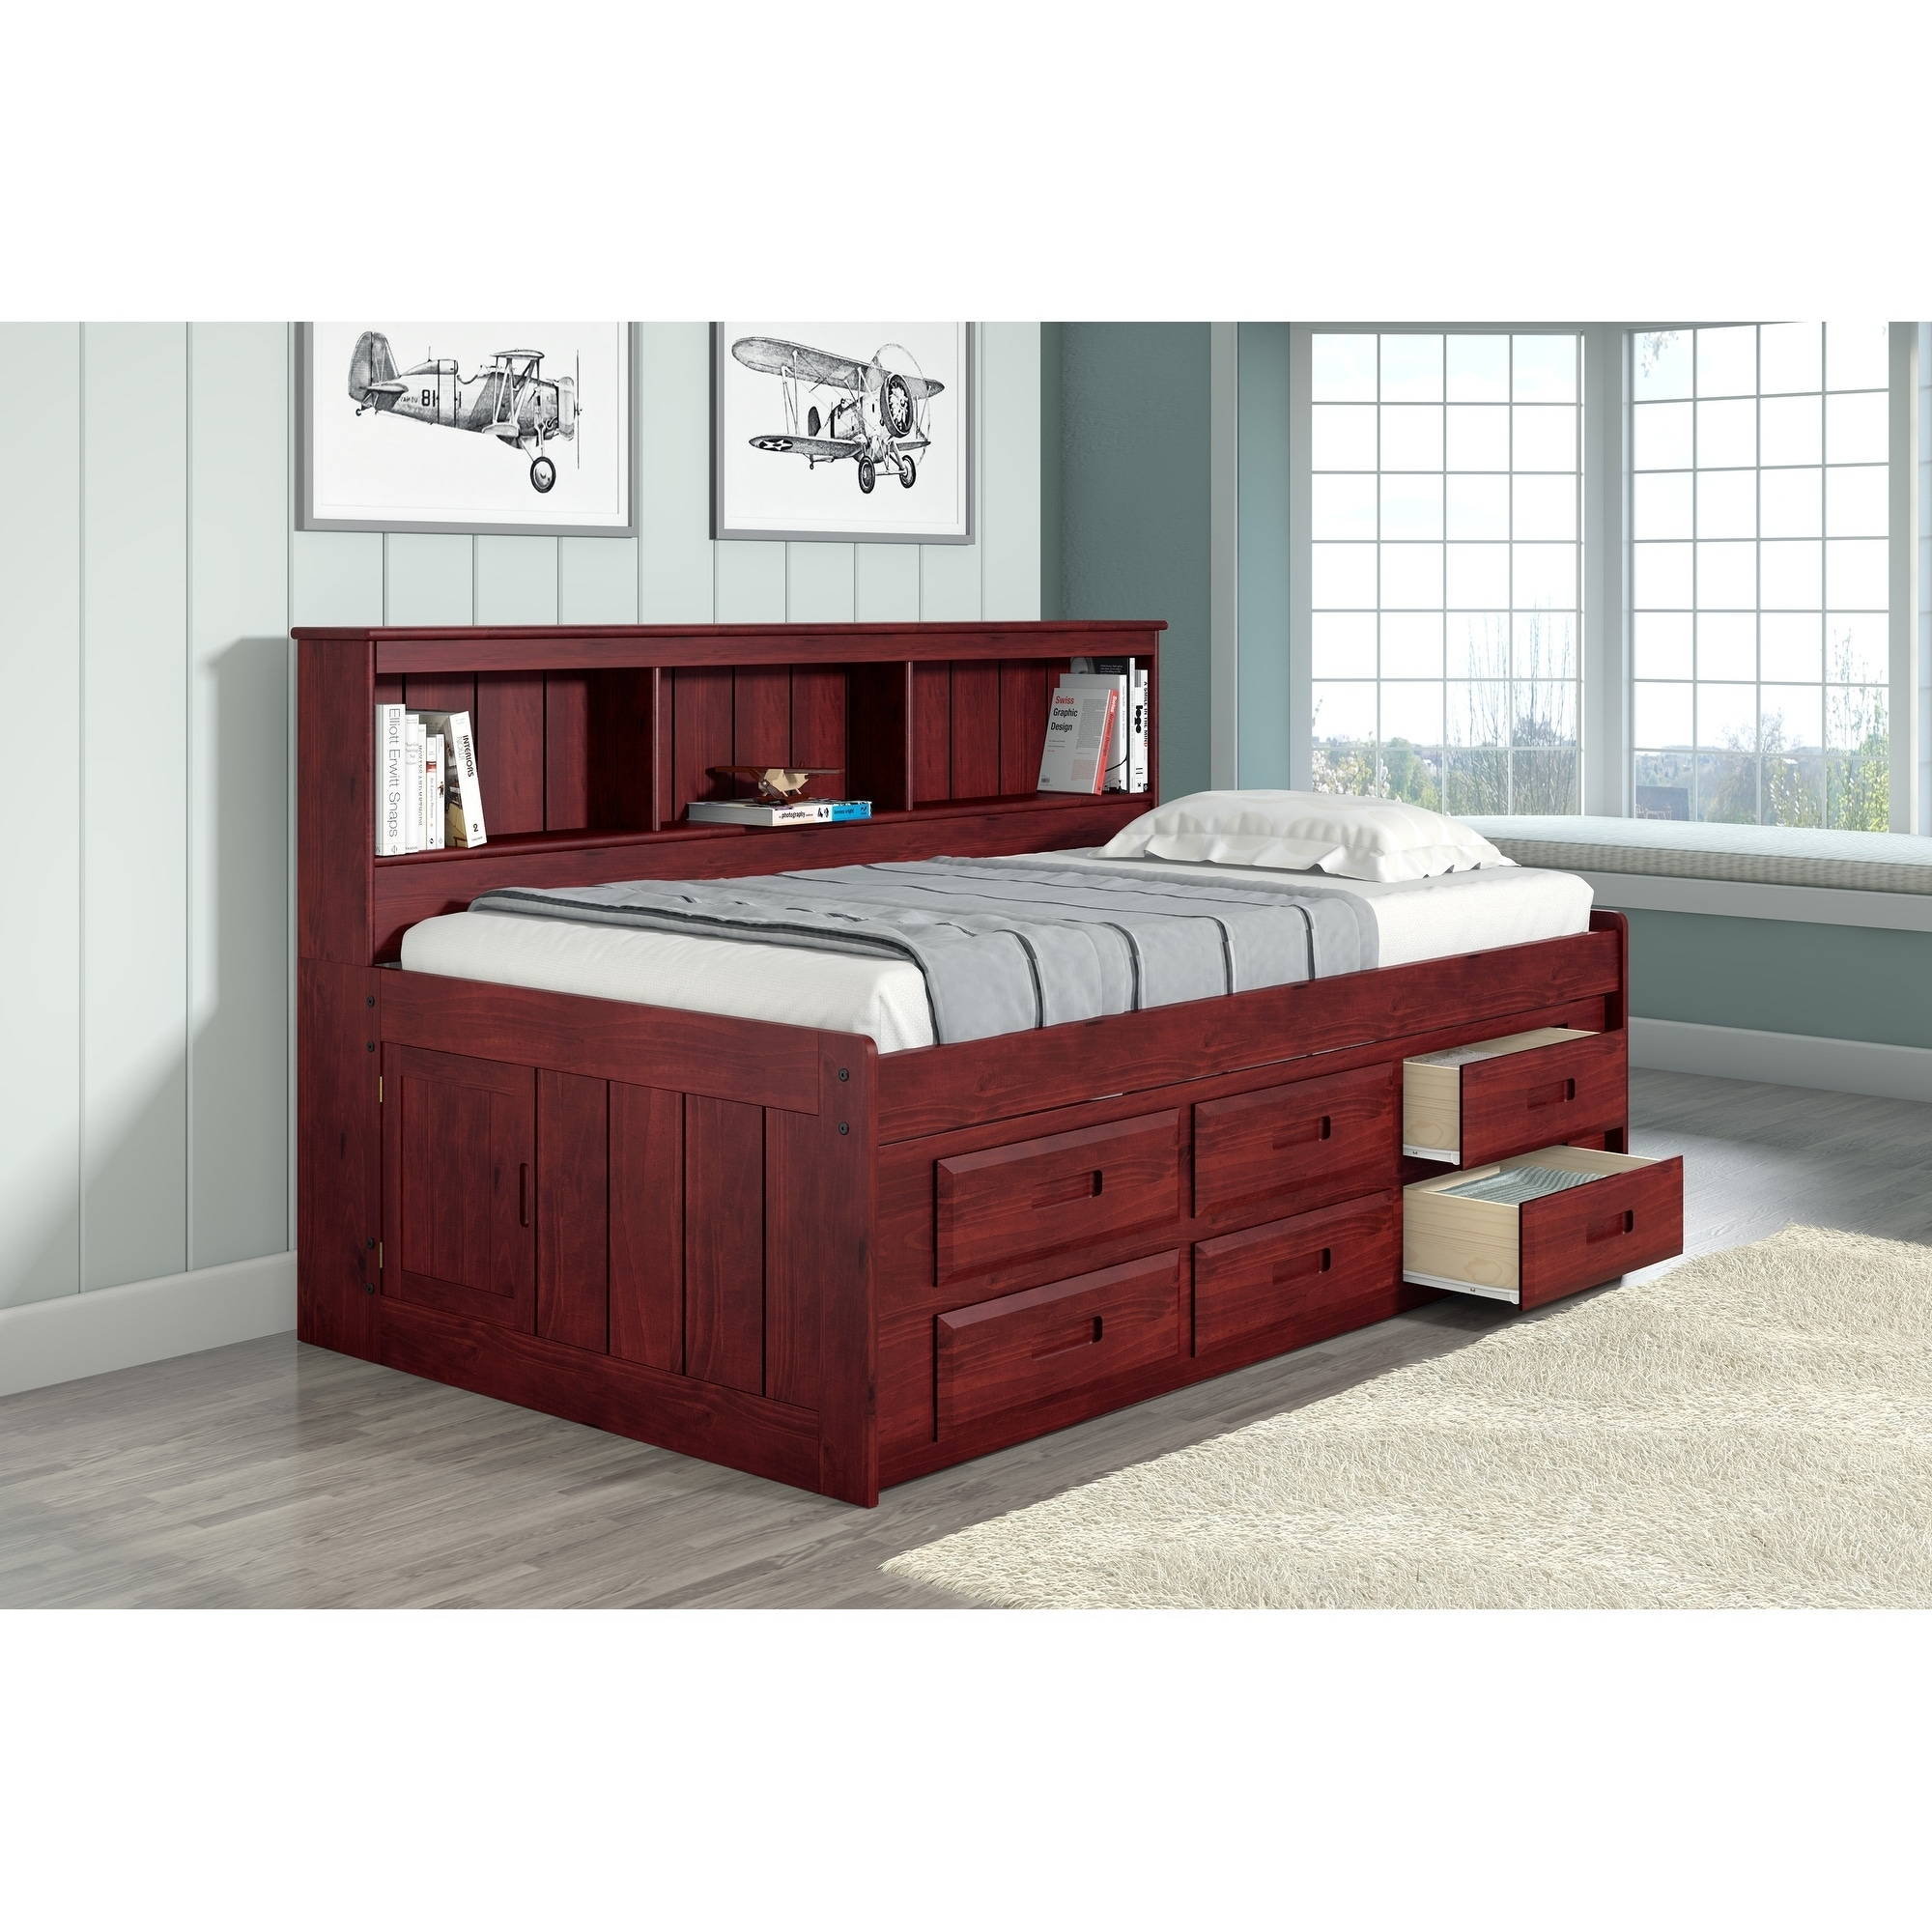 Twin Bookcase Captains Daybed With Six Storage Drawers In Merlot